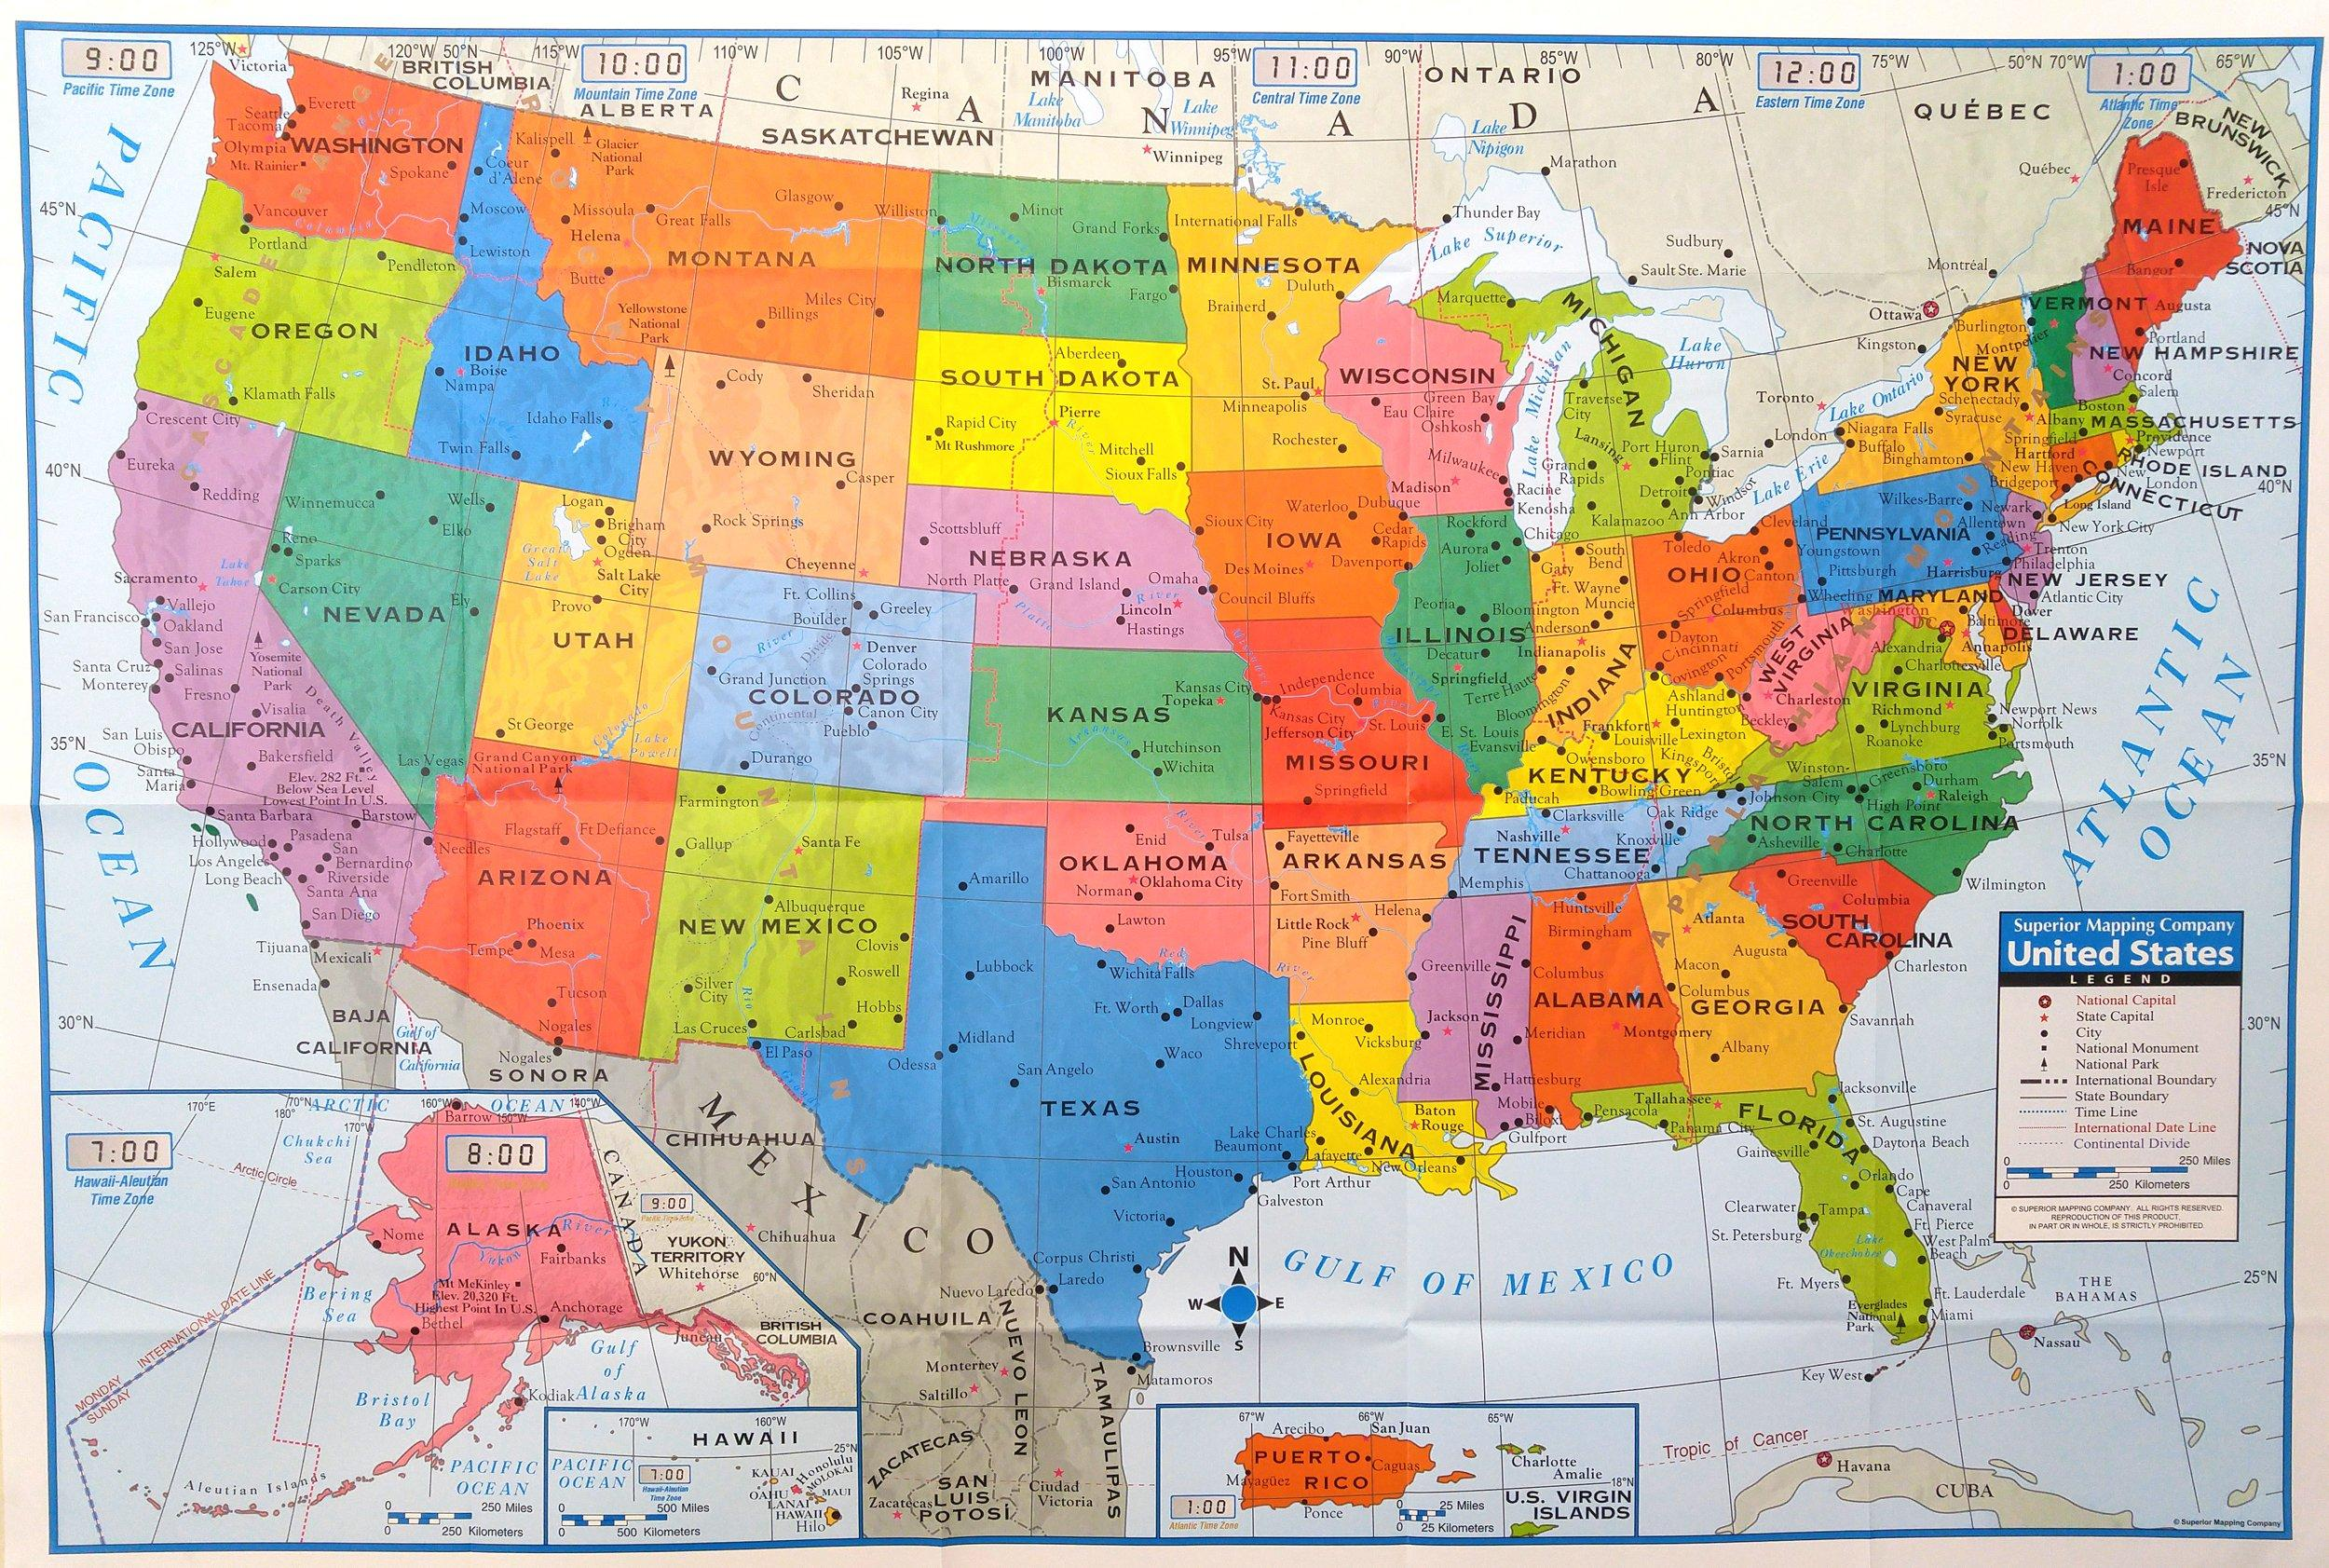 Details about Superior Mapping Company United States Poster Size Wall Map  40 x 28 with Cities